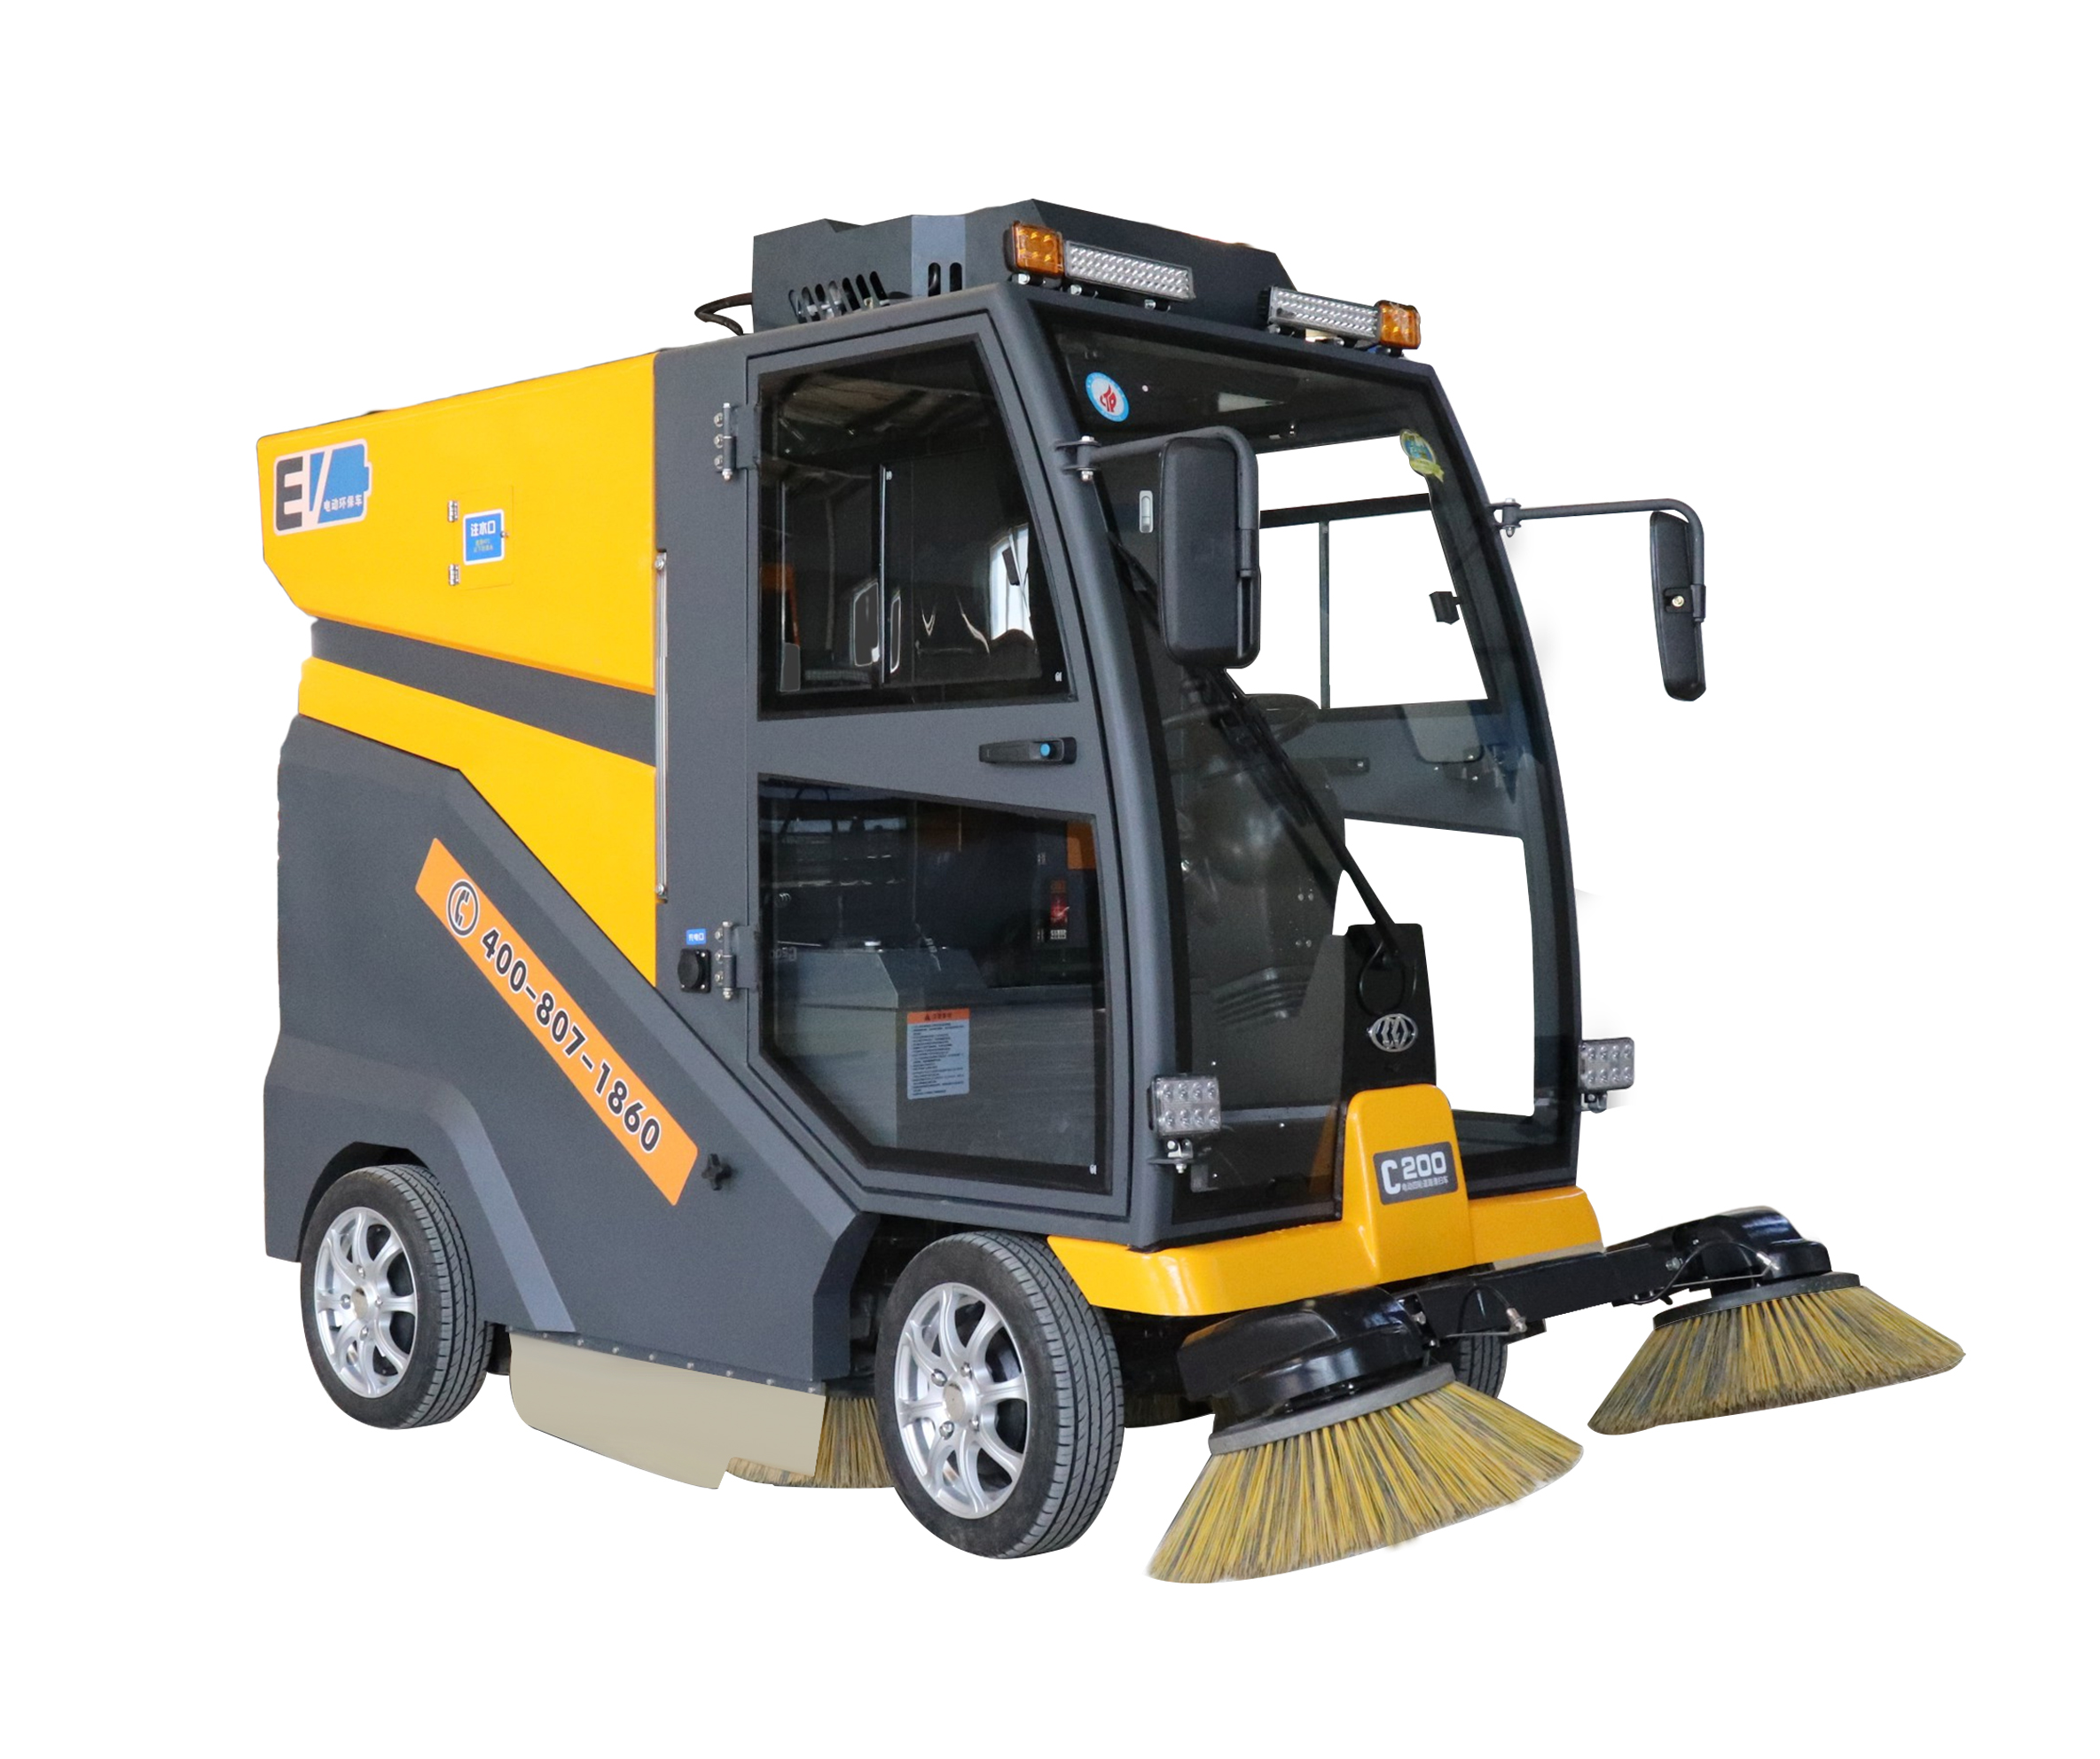 C200 AUTOMATIC FULL-CLOSED ROAD SWEEPER VEHICLE